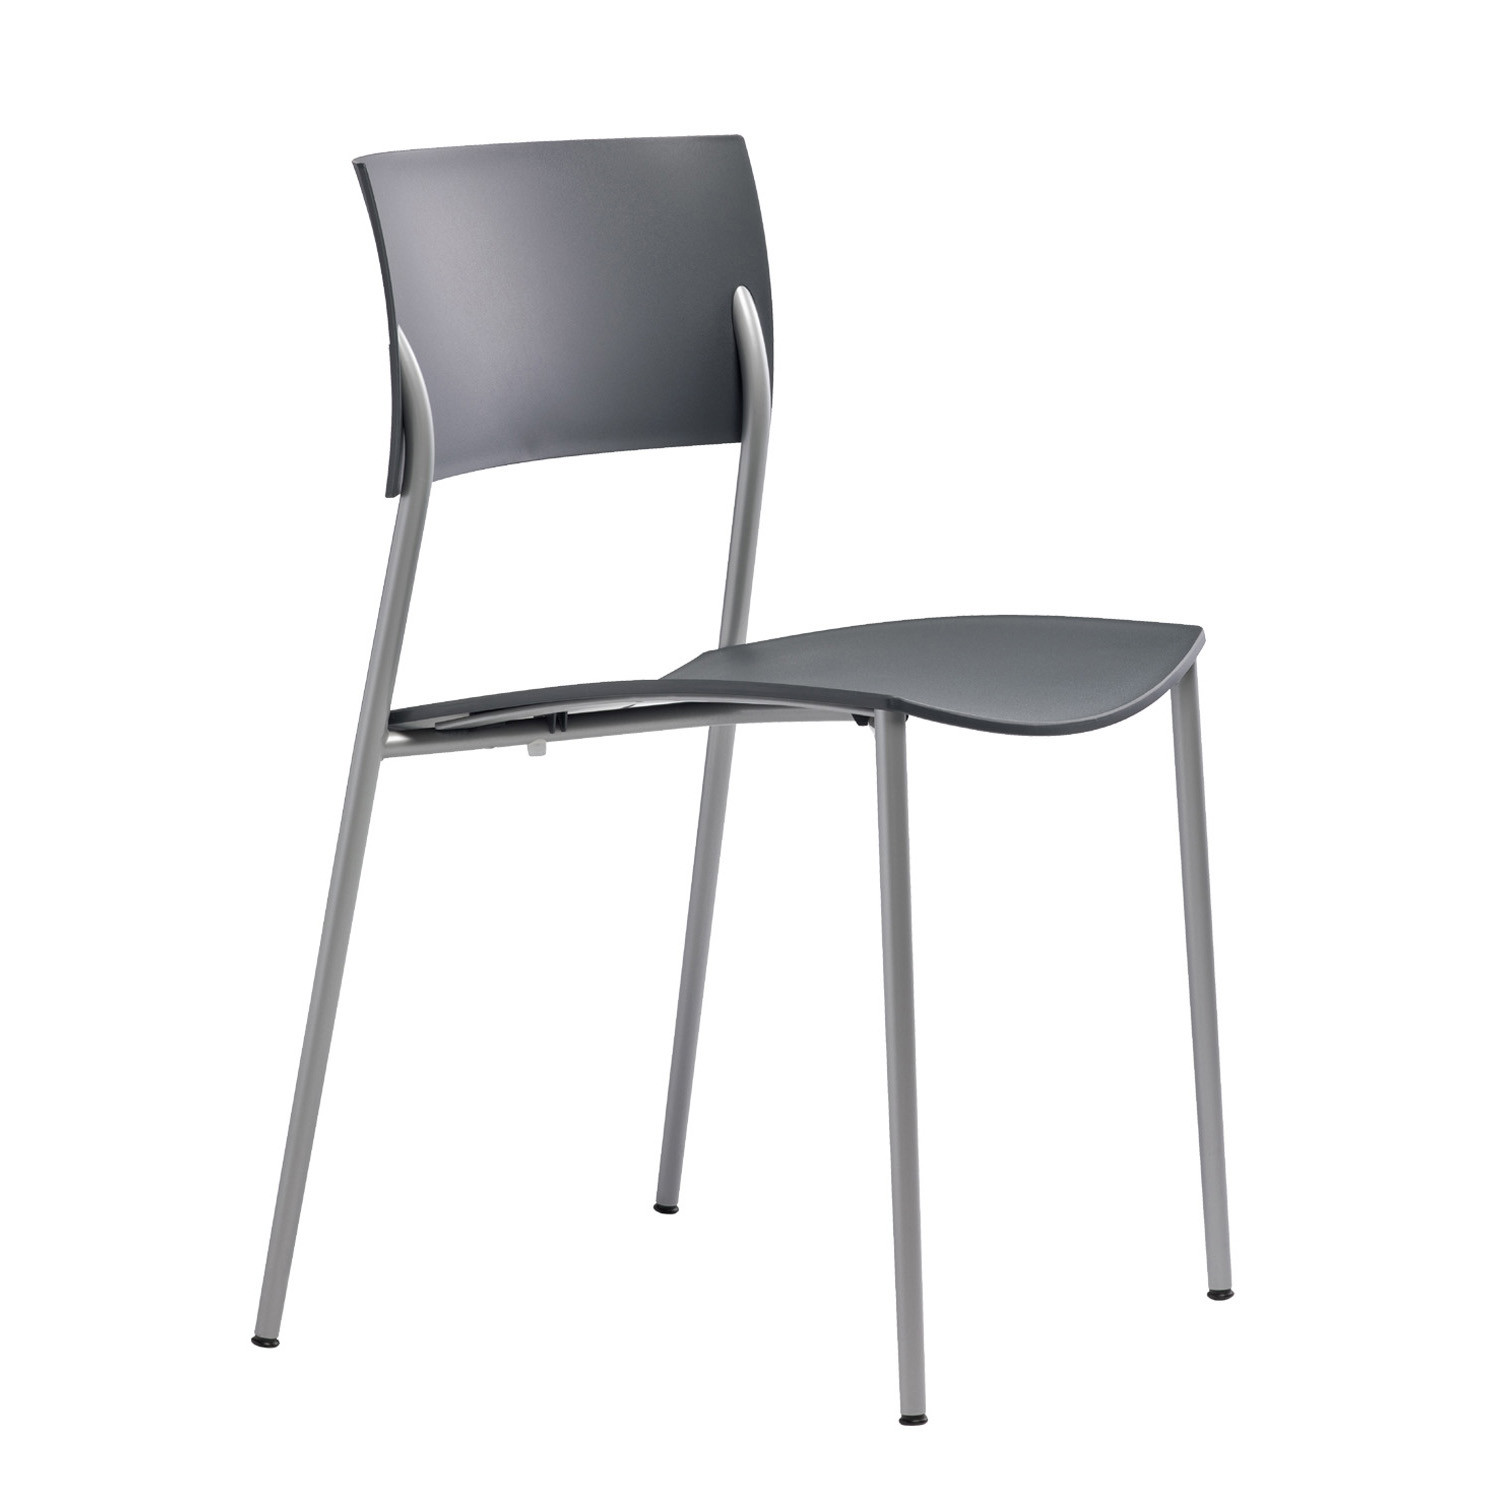 Ch@t Chair by Wiesner Hager